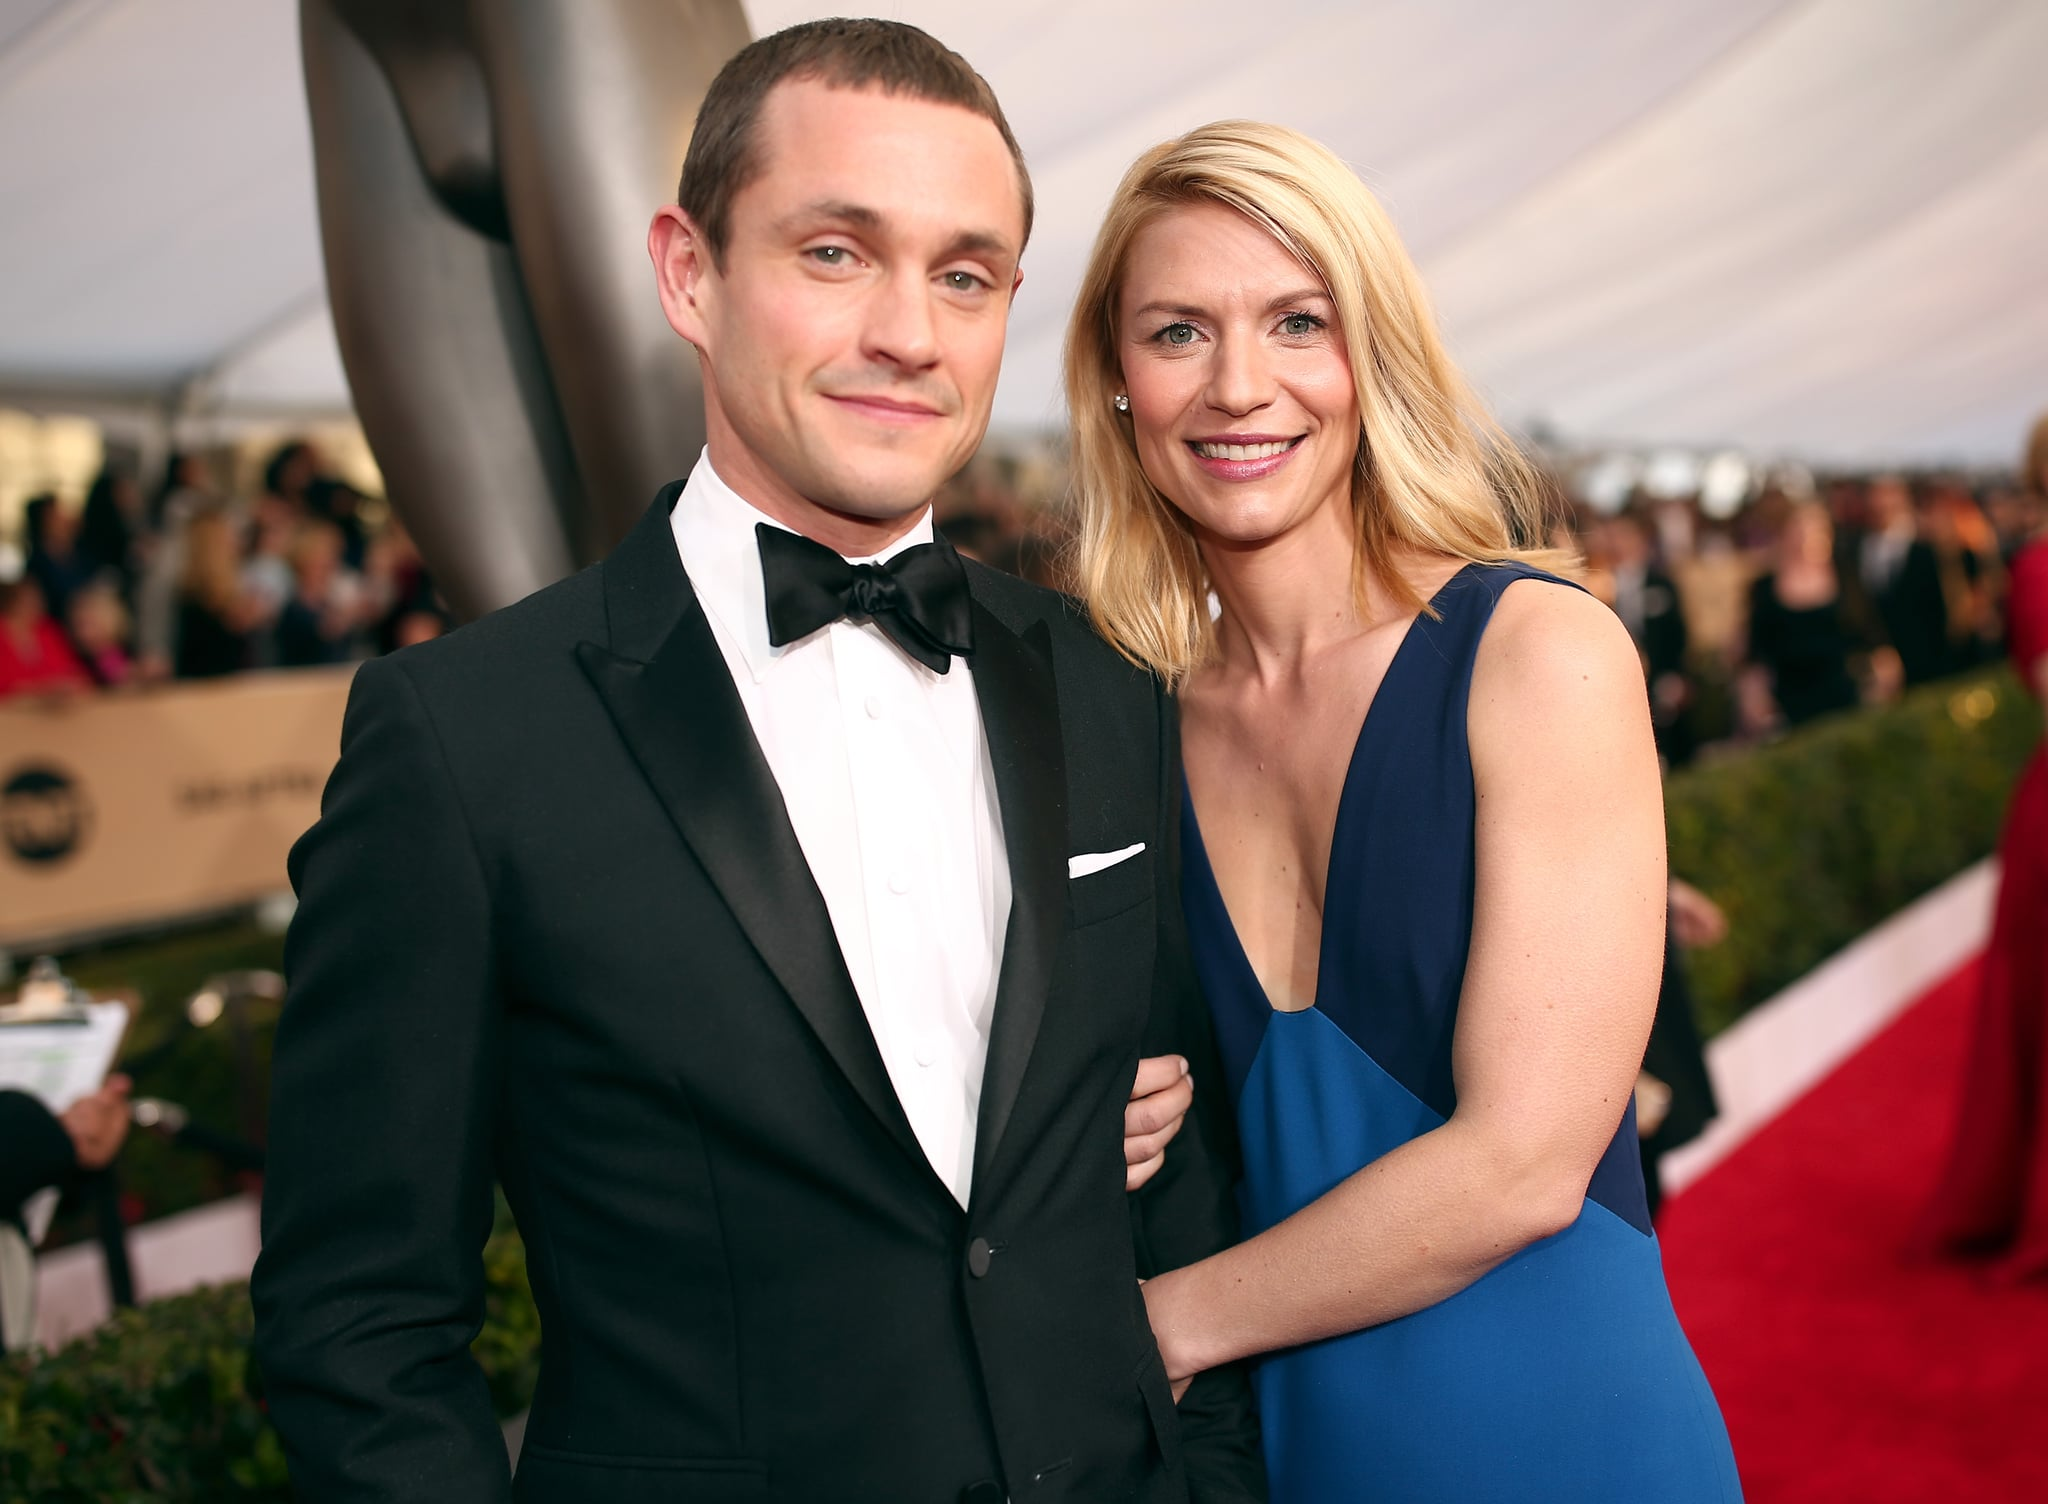 LOS ANGELES, CA - JANUARY 30:  Actress Claire Danes (R) and Hugh Dancy attend The 22nd Annual Screen Actors Guild Awards at The Shrine Auditorium on January 30, 2016 in Los Angeles, California. 25650_018  (Photo by Christopher Polk/Getty Images for Turner)